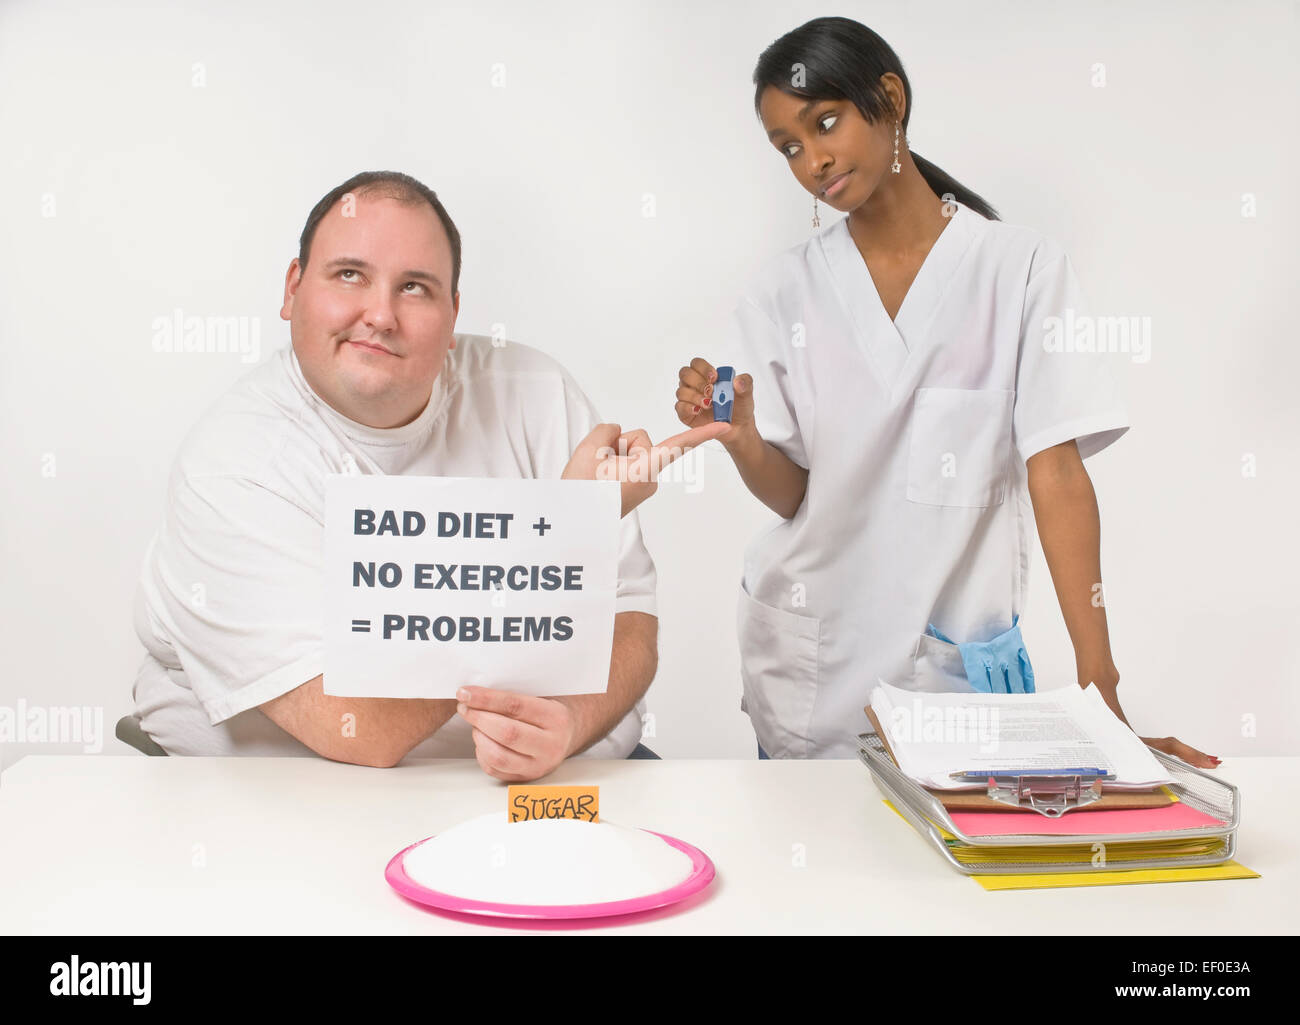 Nurse checking overweight man's blood glucose levels - Stock Image